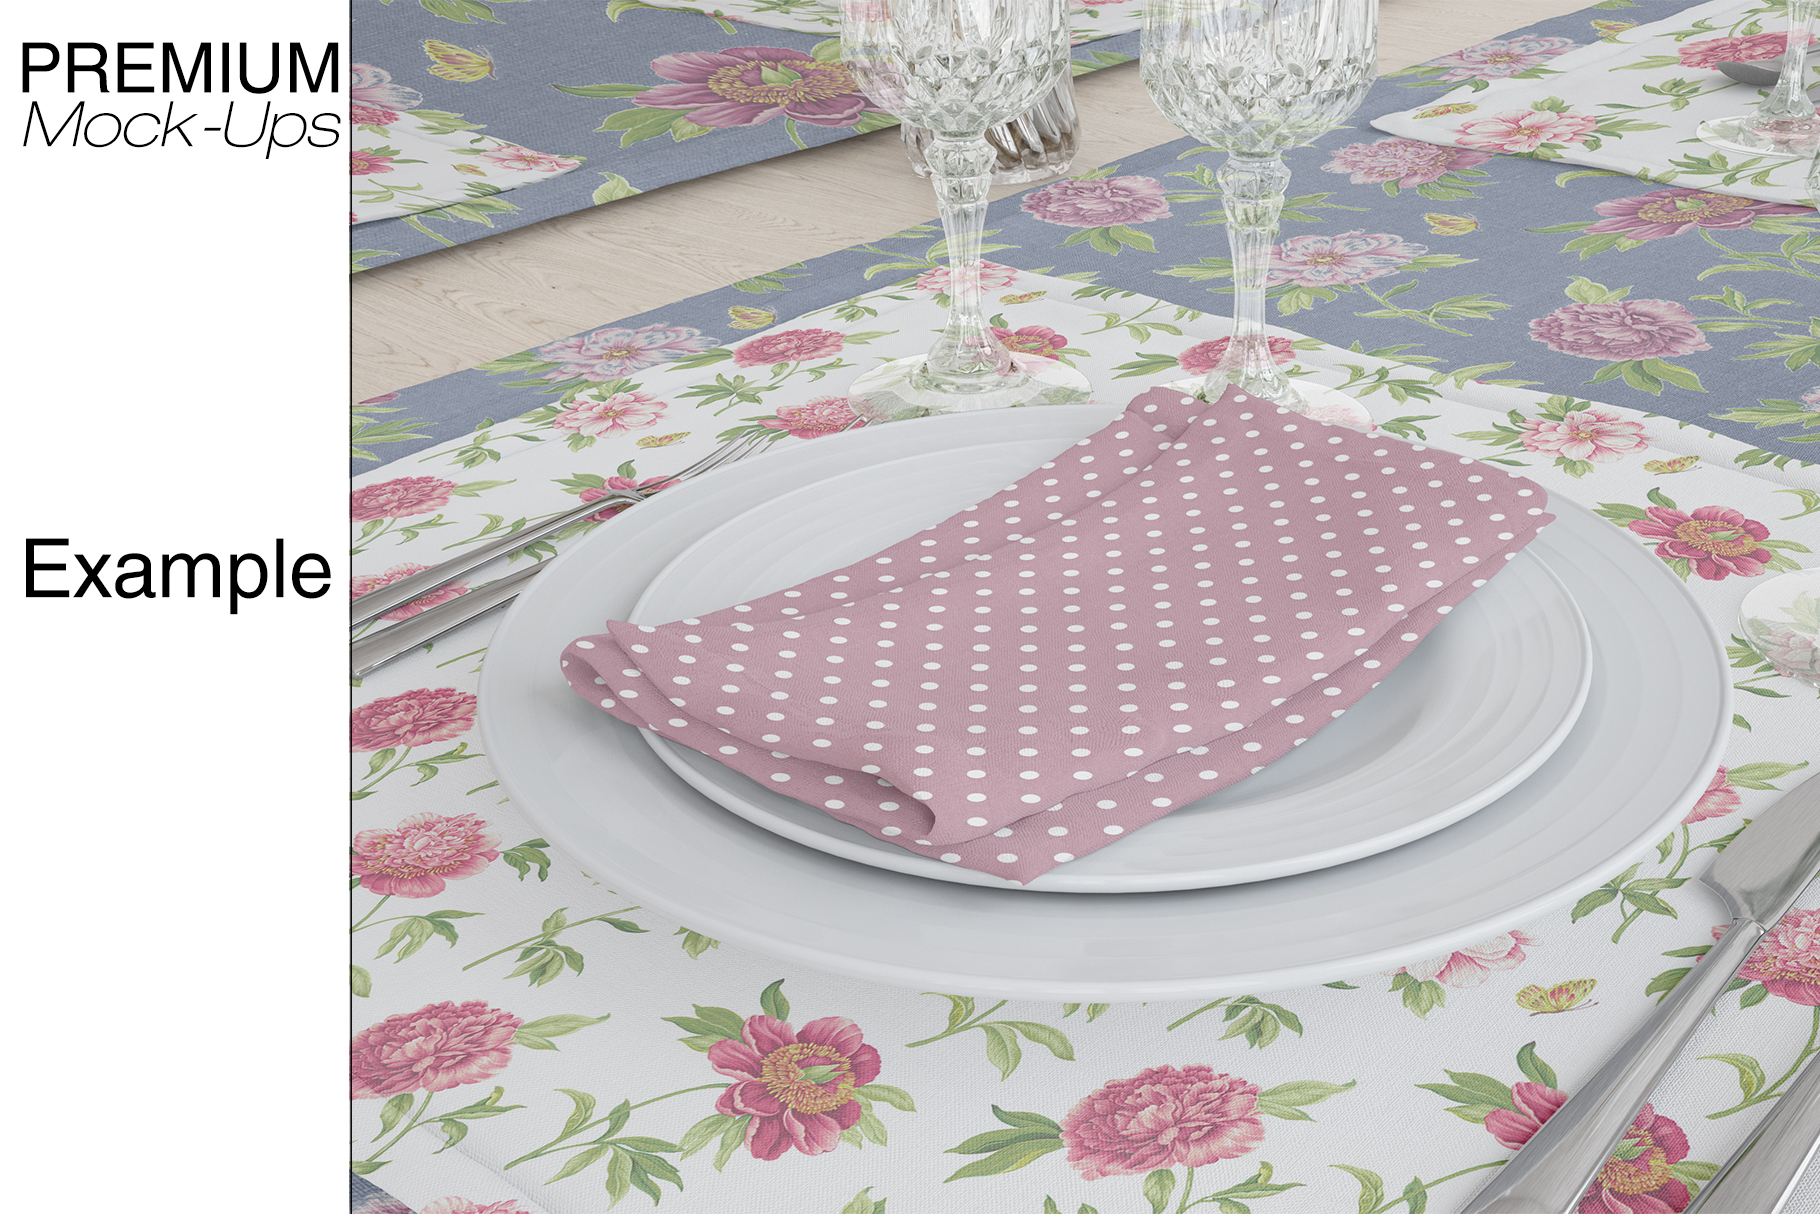 Tablecloth, Runner, Napkins & Plates example image 11